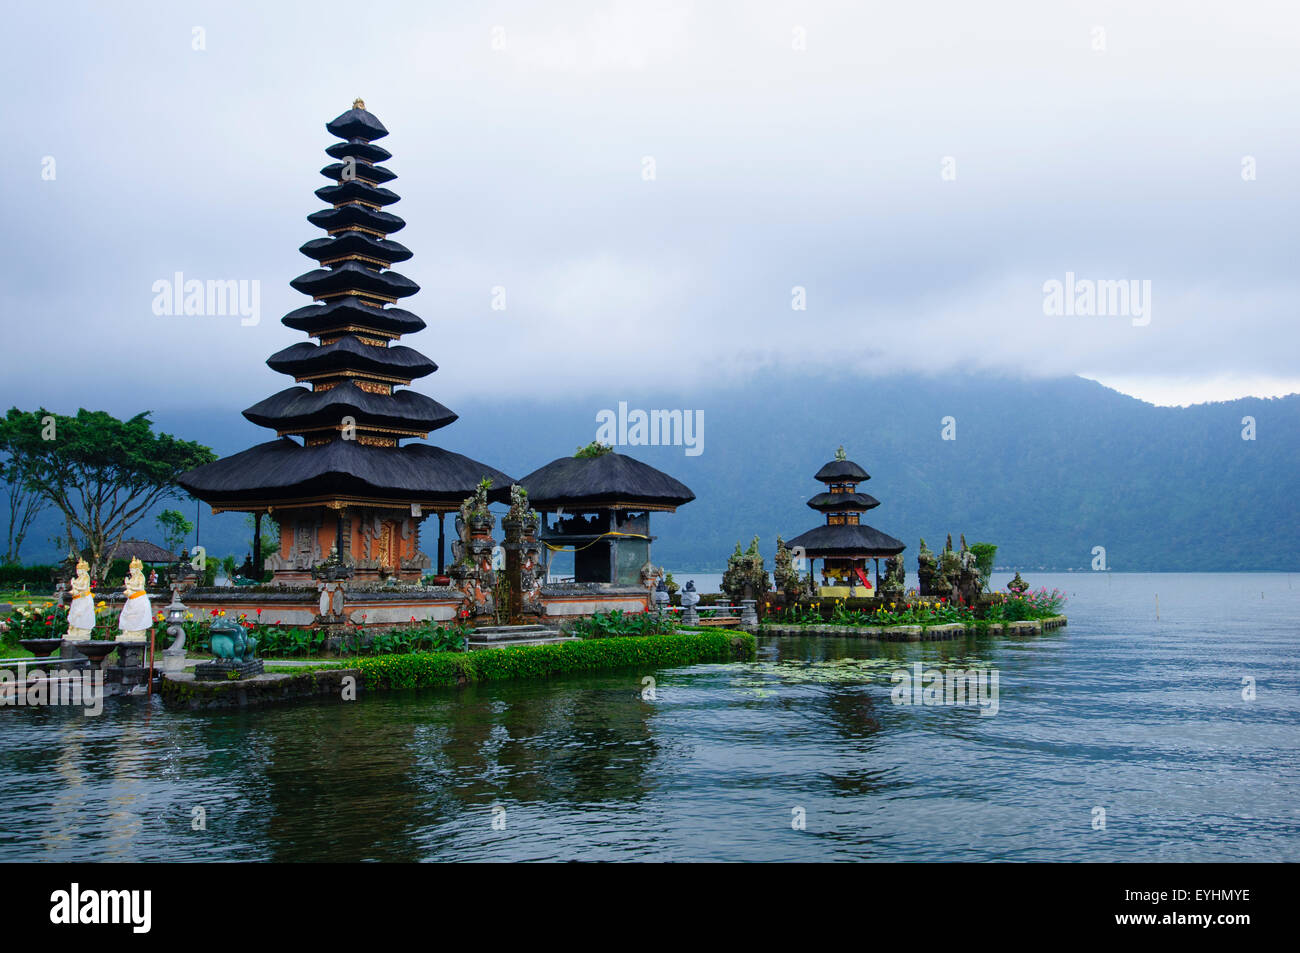 The temple of Pura Ulun Danau Bratan, one of the most revered temples in Bali, Located in the town of Bedugul in - Stock Image